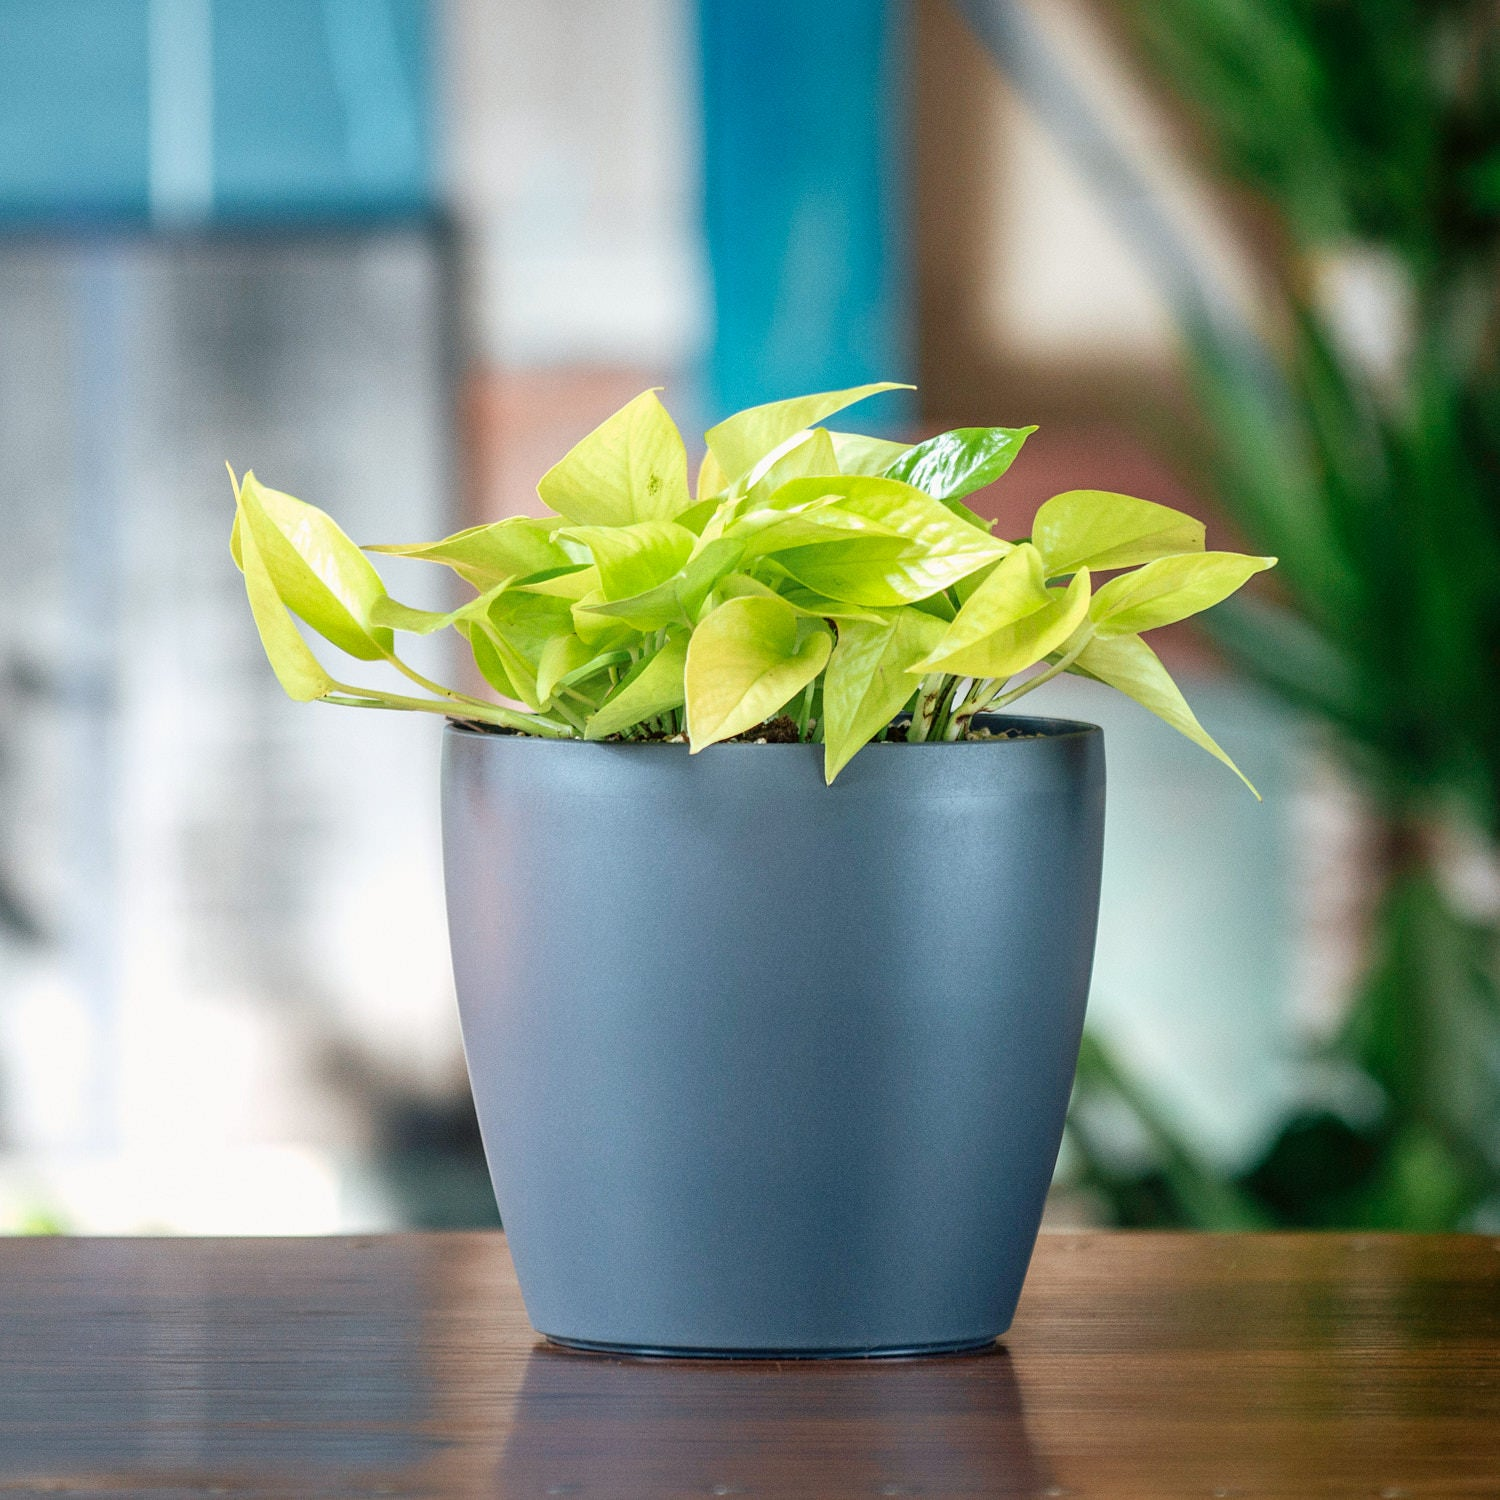 Pothos Neon In Classico Mini Trend Slate Planter | My City Plants